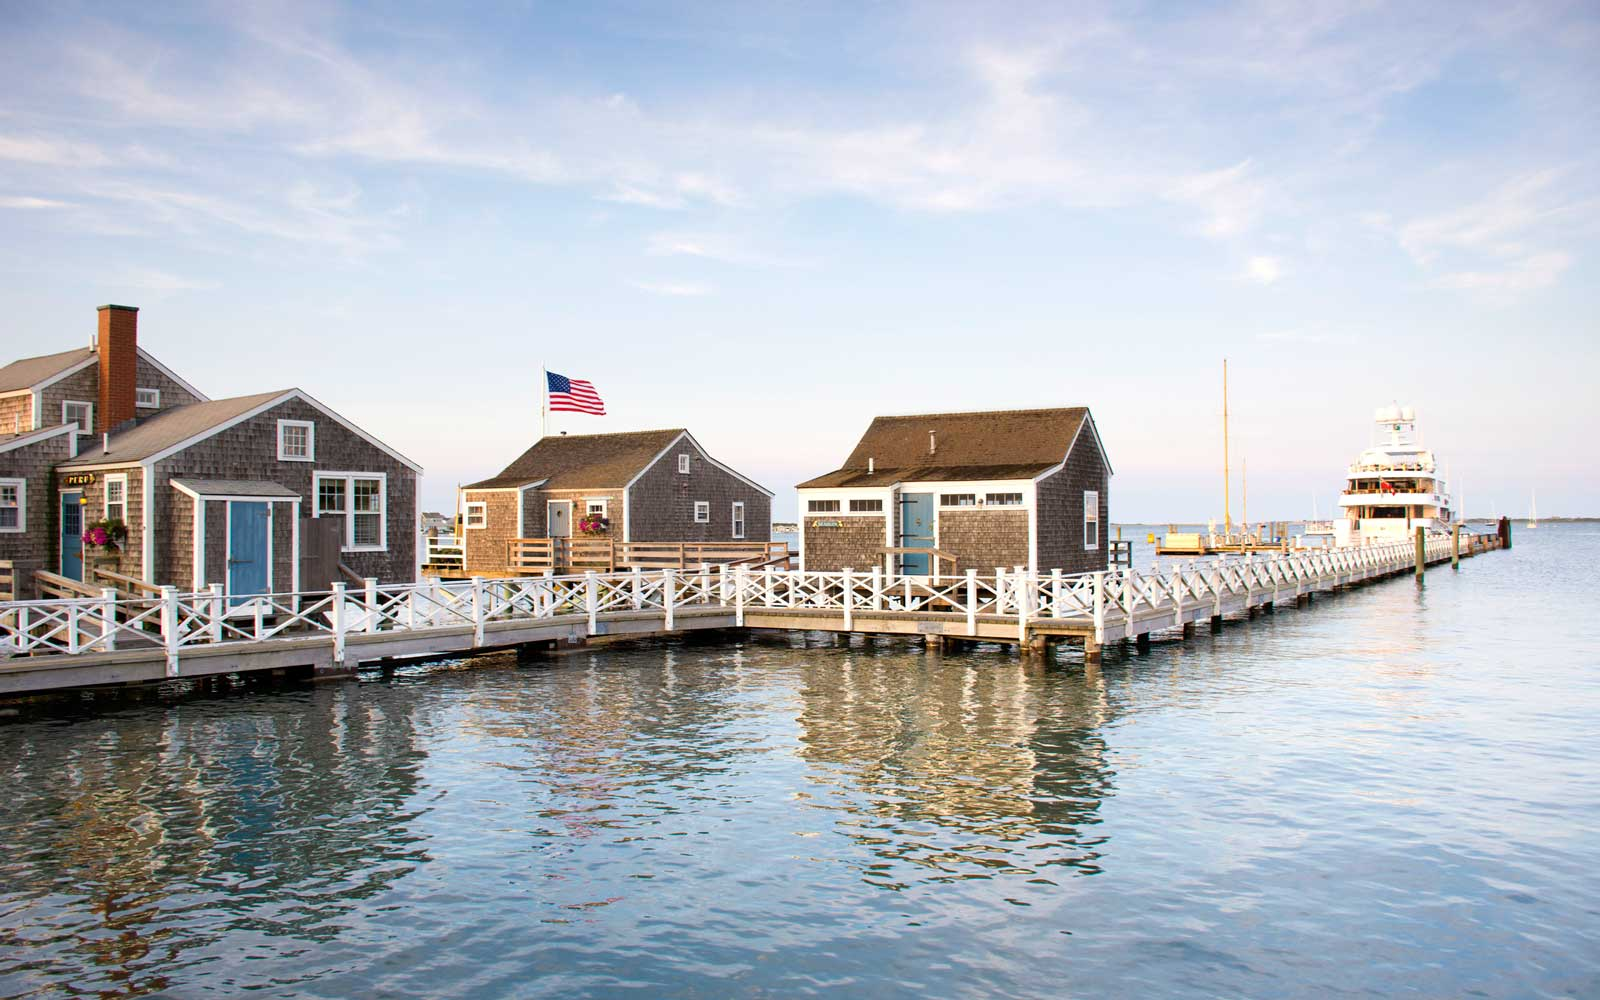 Old North Wharf, Nantucket Island, Massachusetts